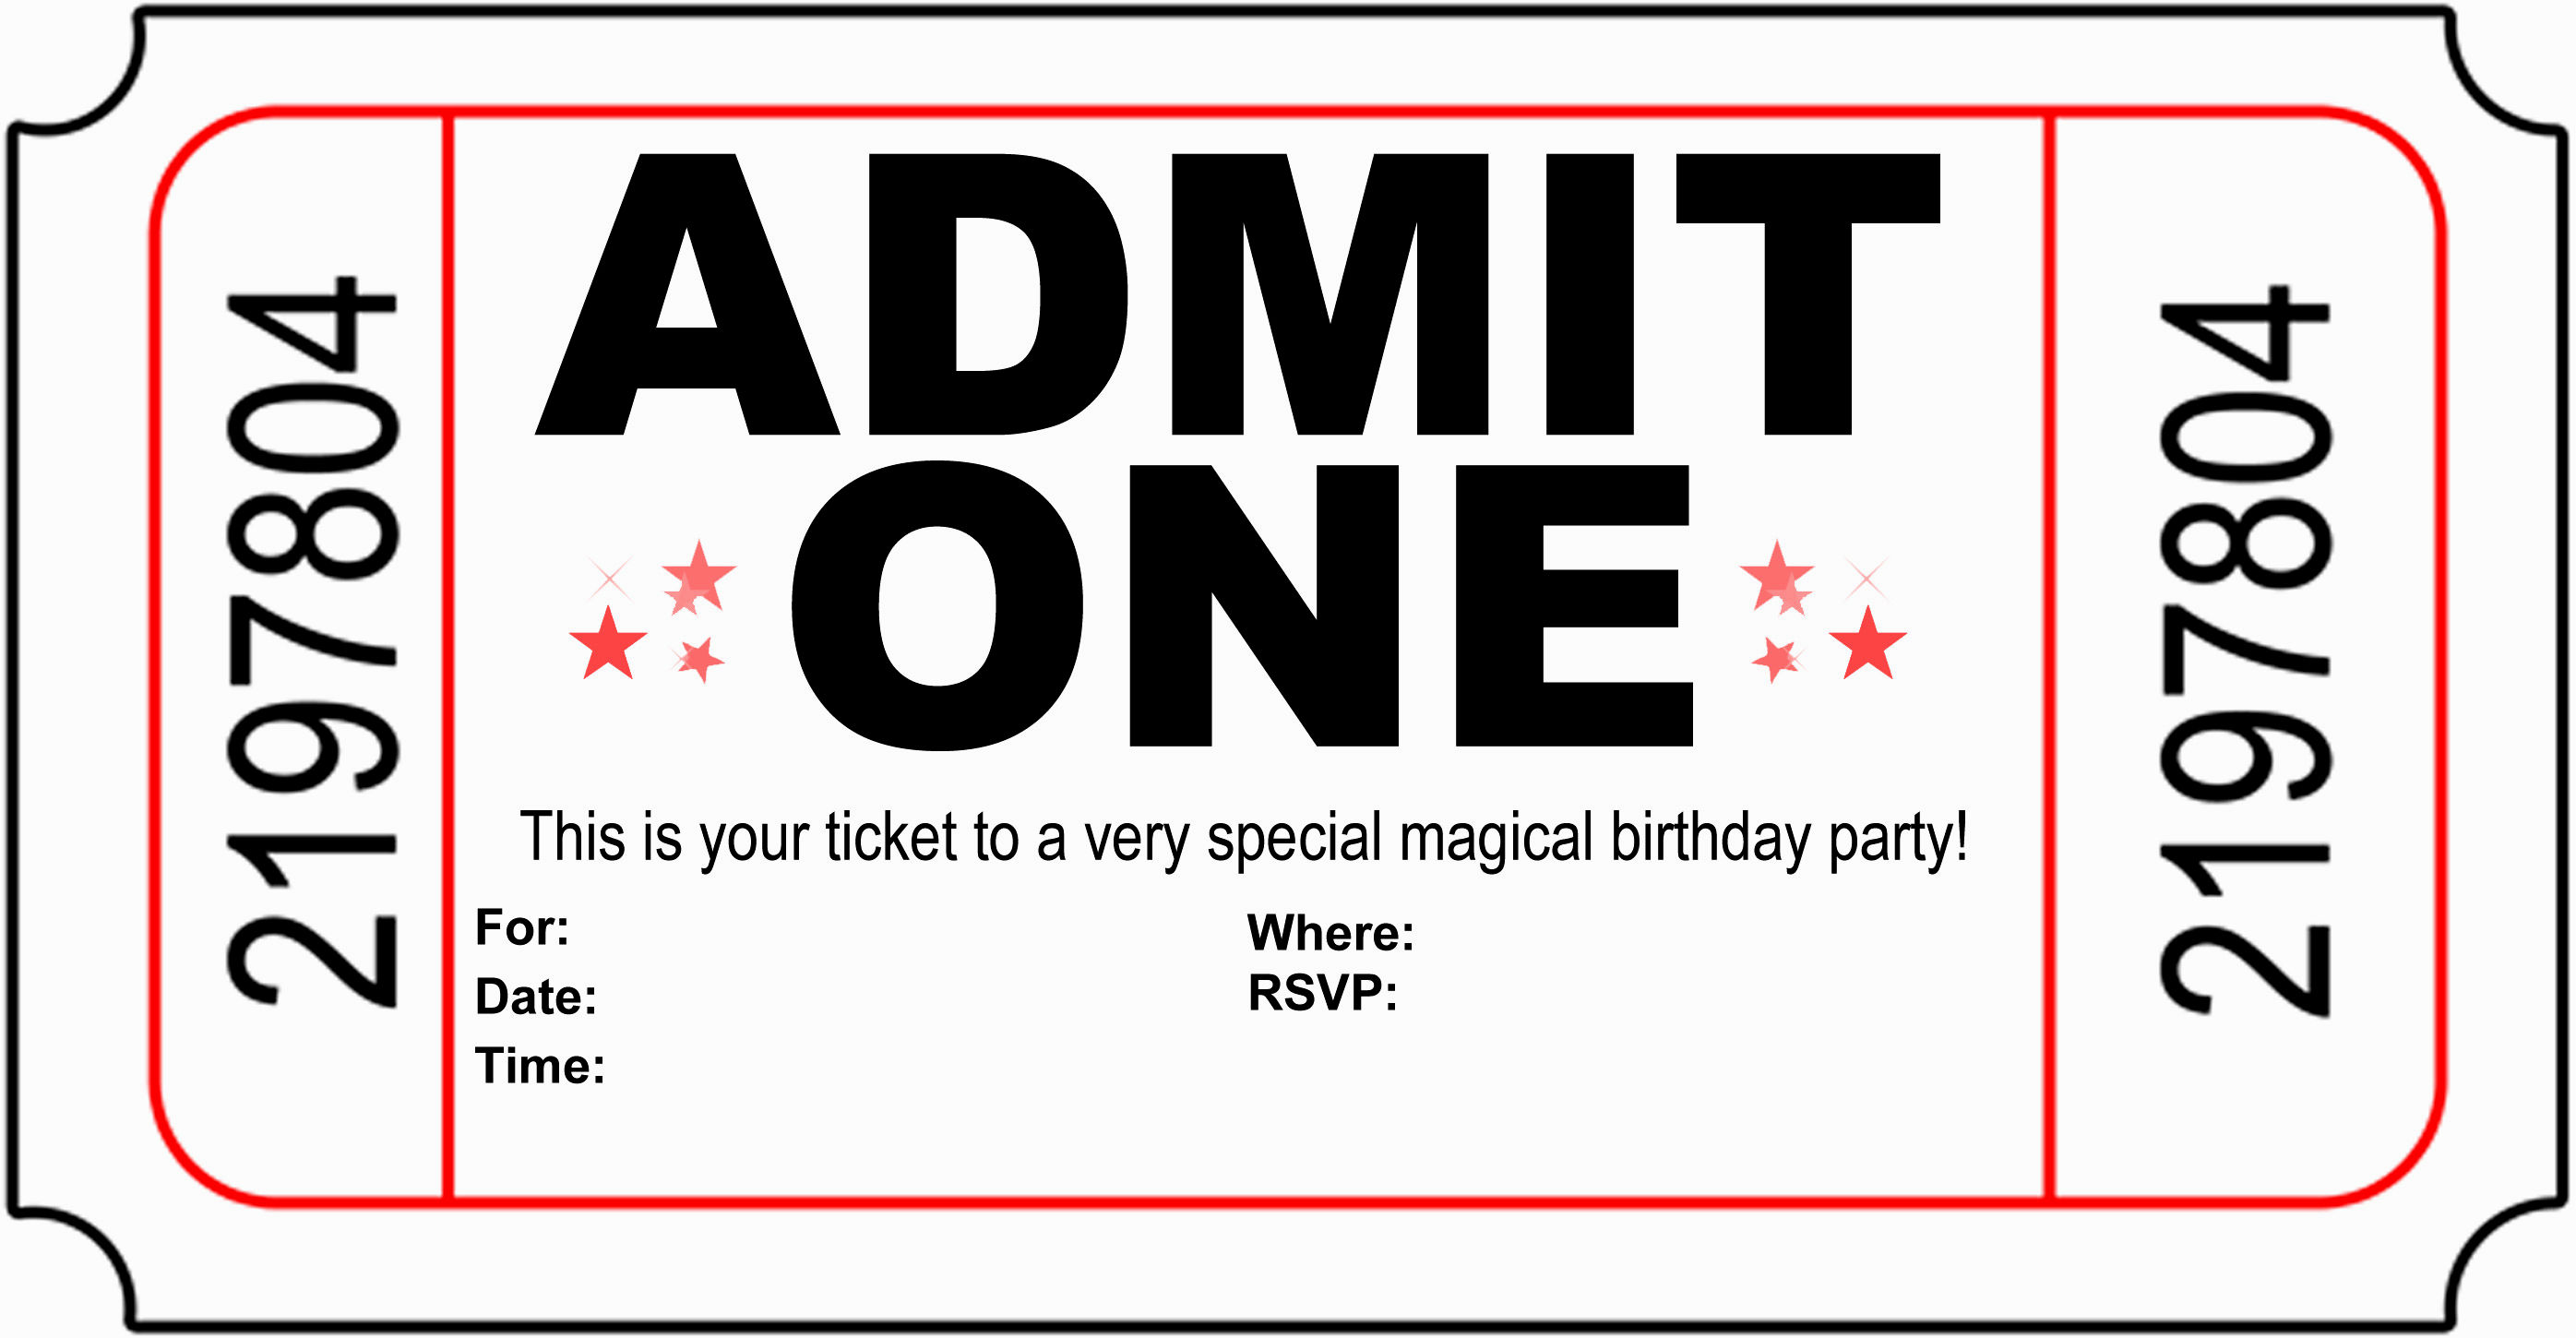 printable 18th birthday invitations ; 18Th-Birthday-Party-Invitations-Free-and-get-inspired-to-create-your-own-birthday-Invitation-design-with-this-ideas-1